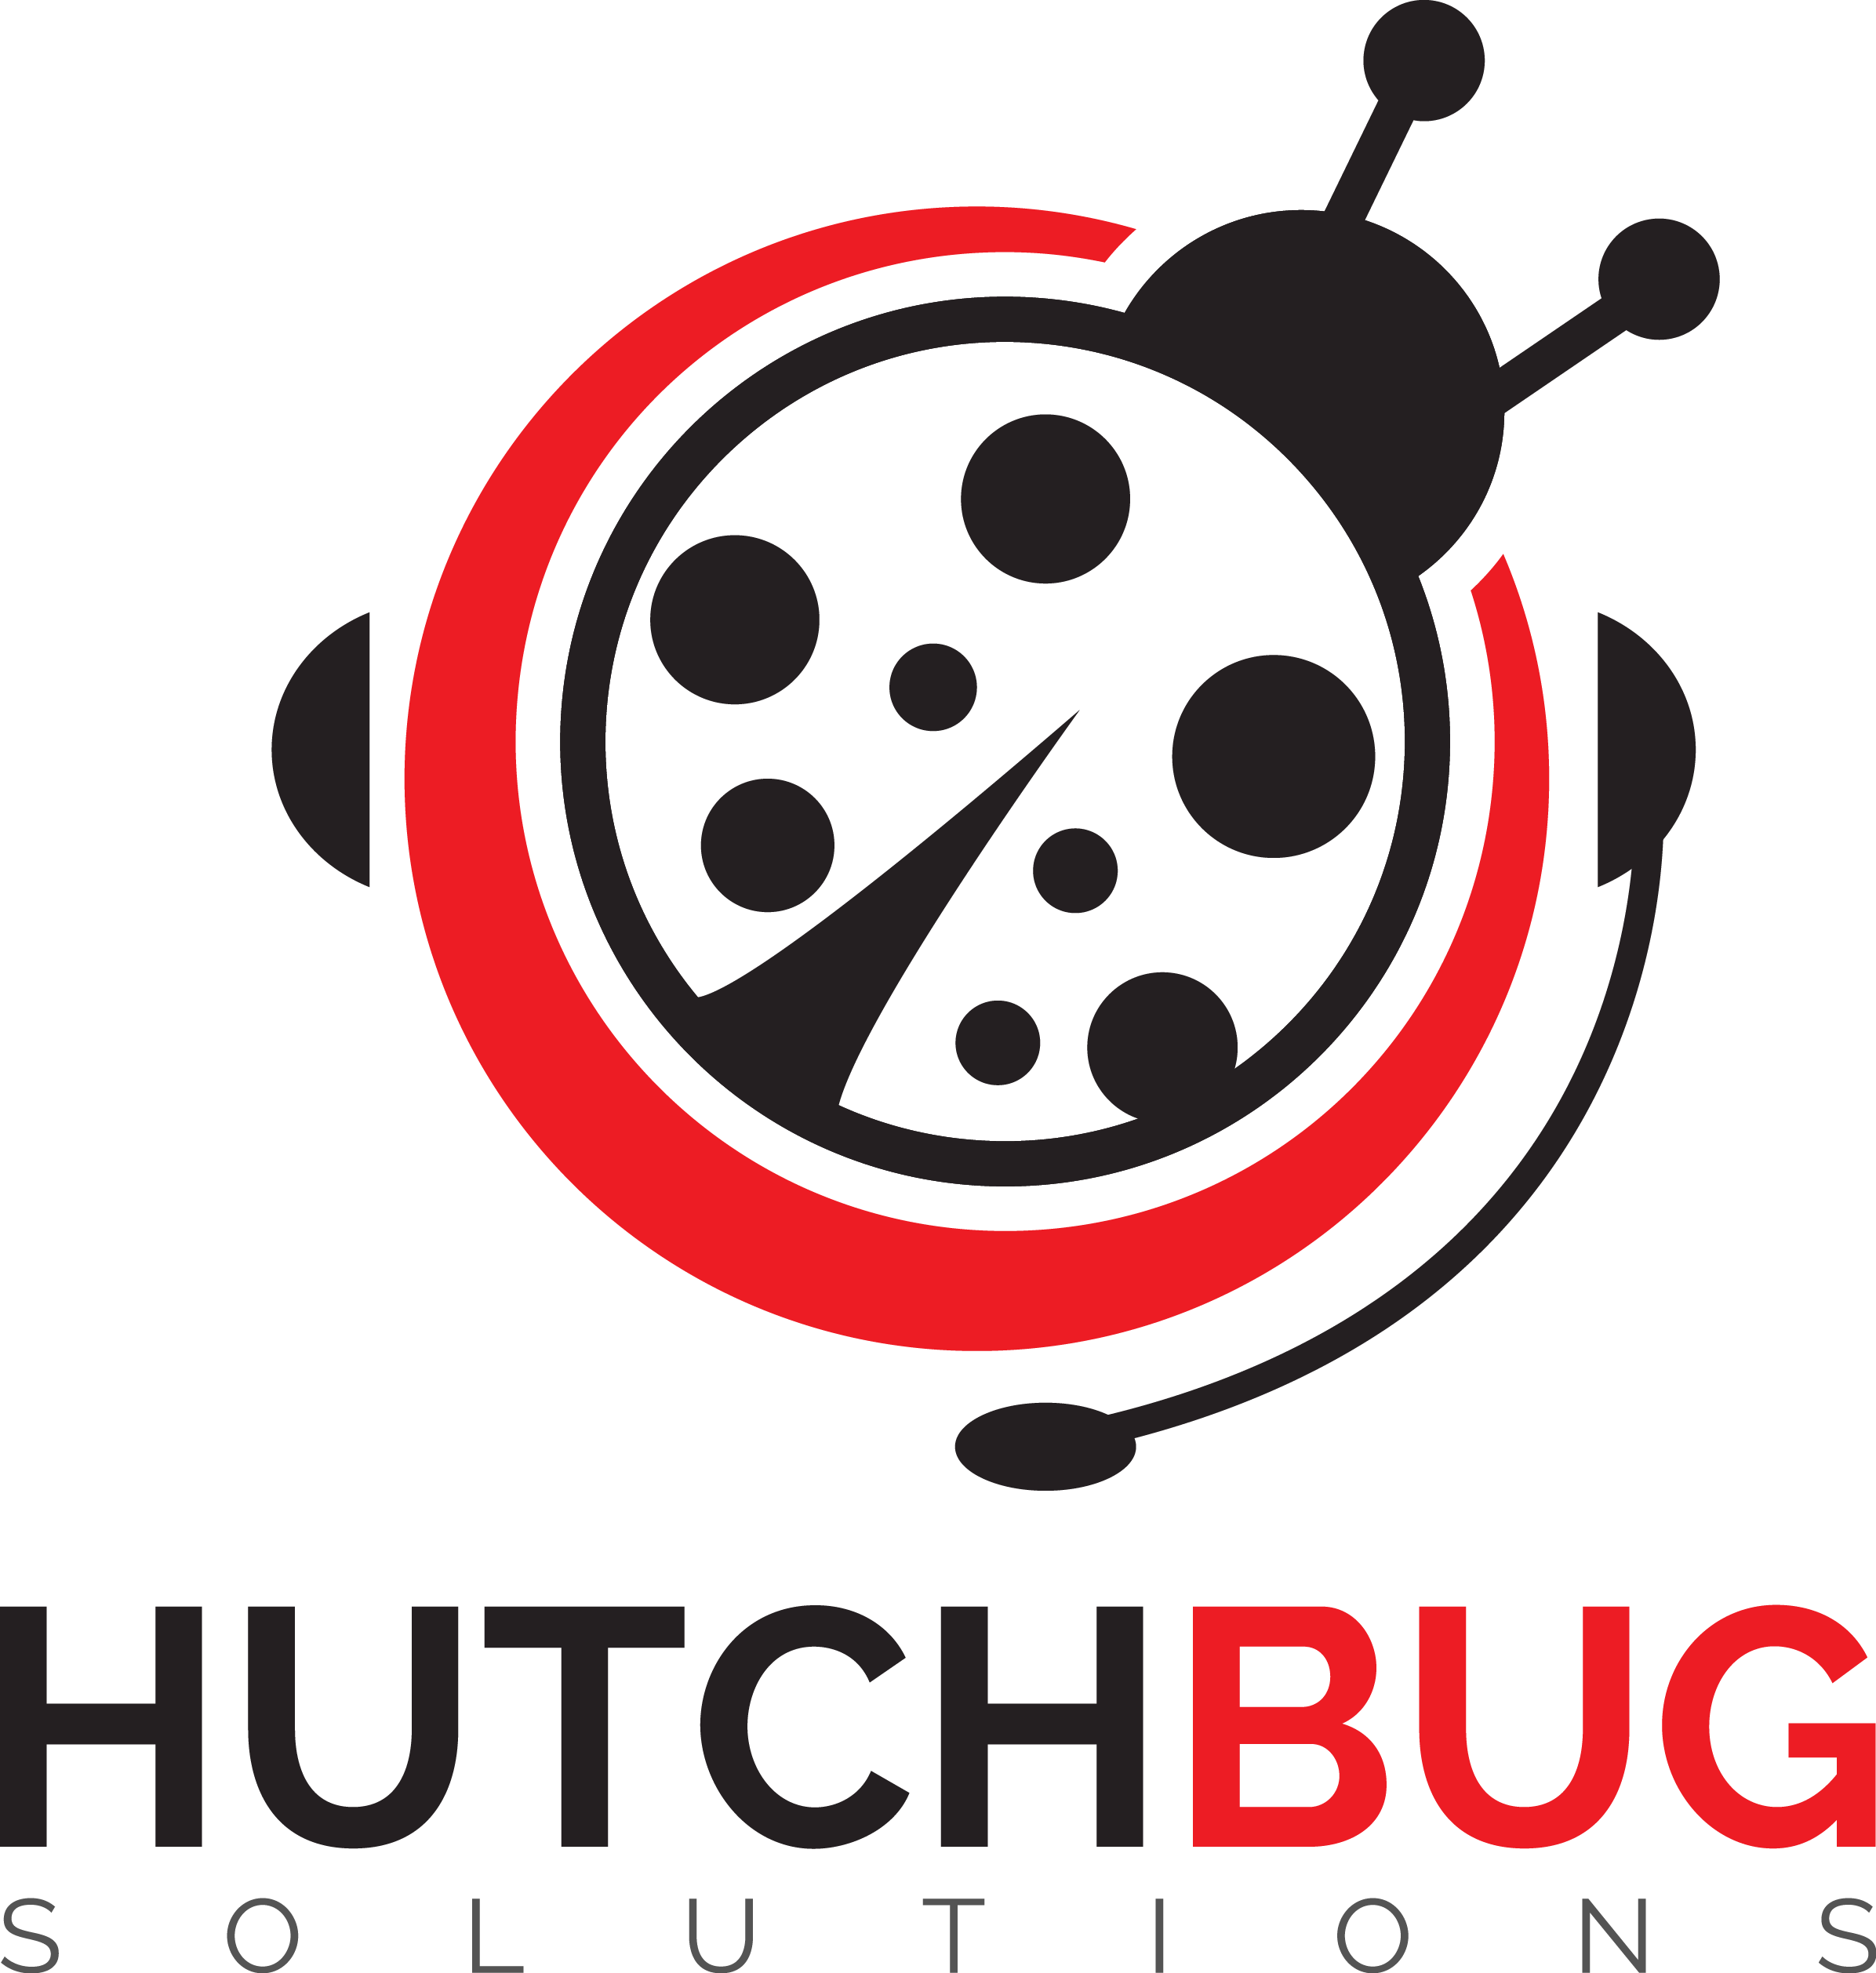 Hutchbug Solutions logo